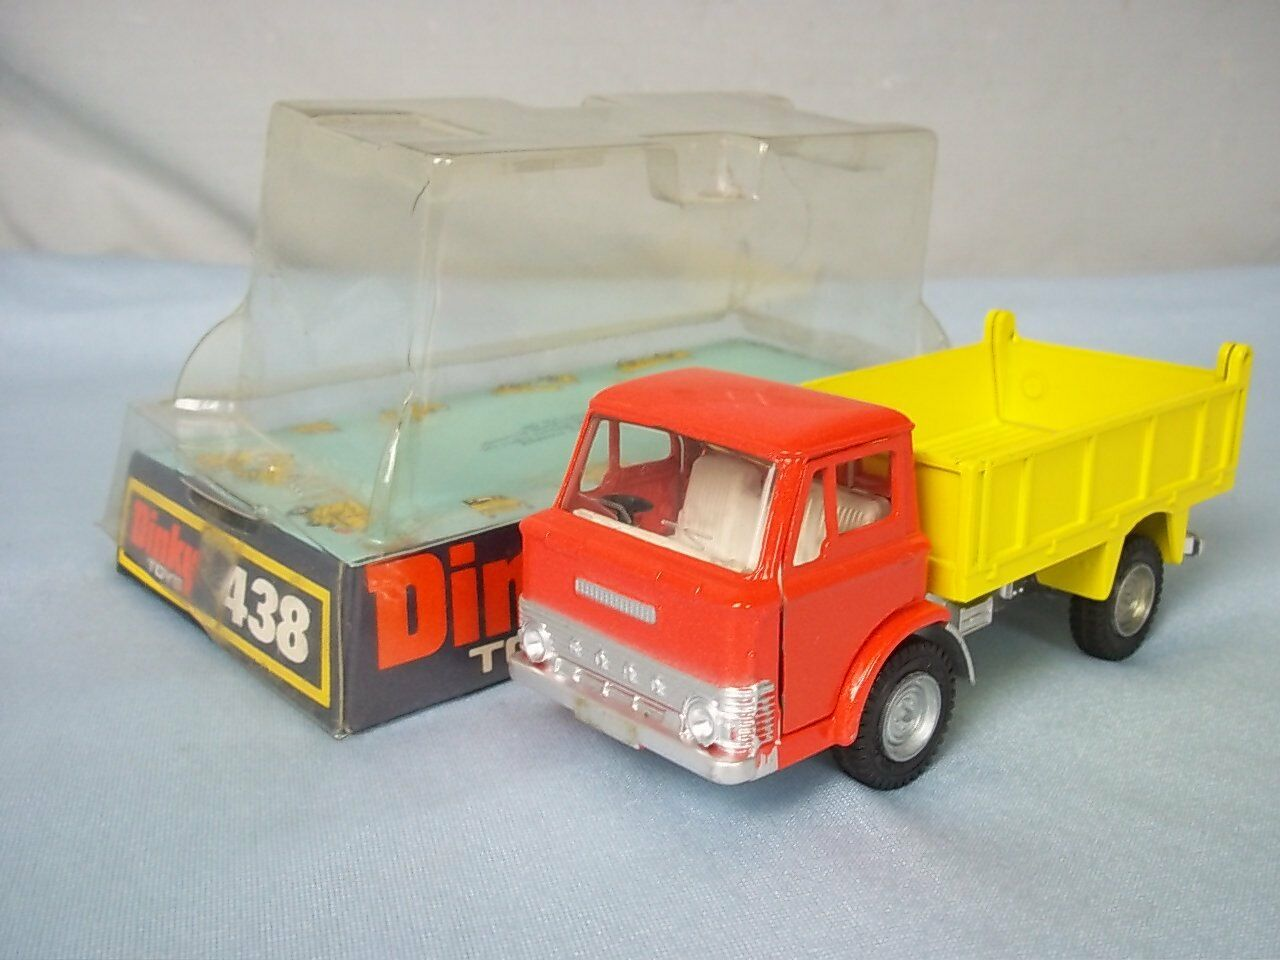 Dinky Juguetes No.438 Ford D800 Tipper Truck, Near Mint Boxed, 1971